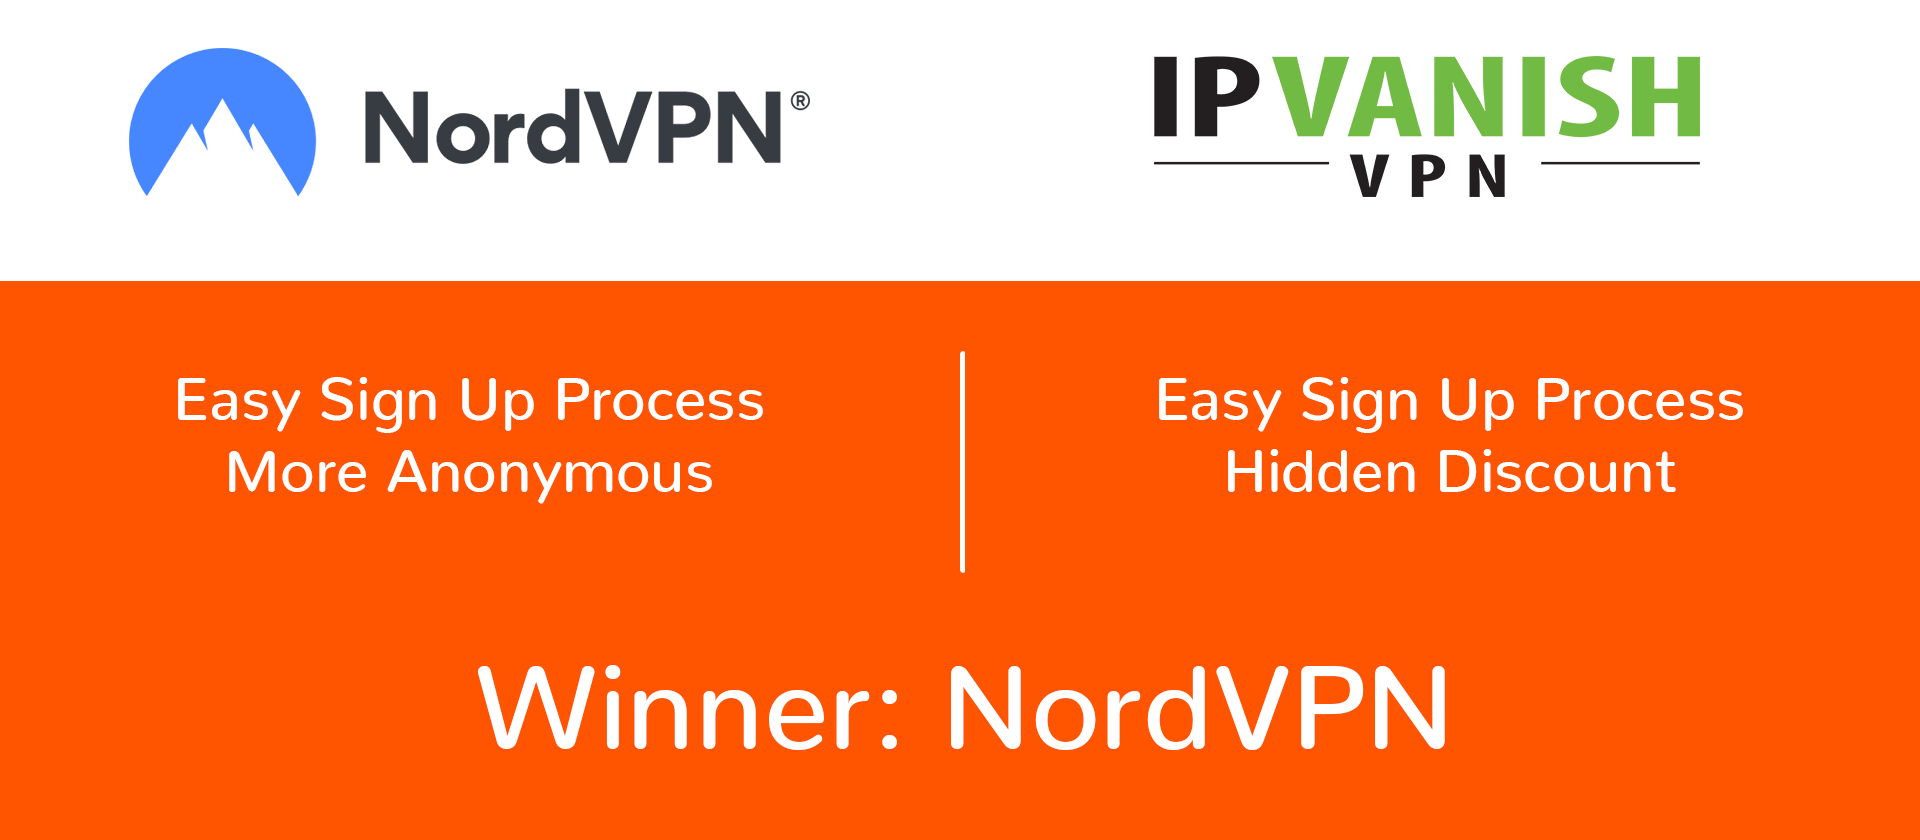 sign up process between NordVPN IPVanish